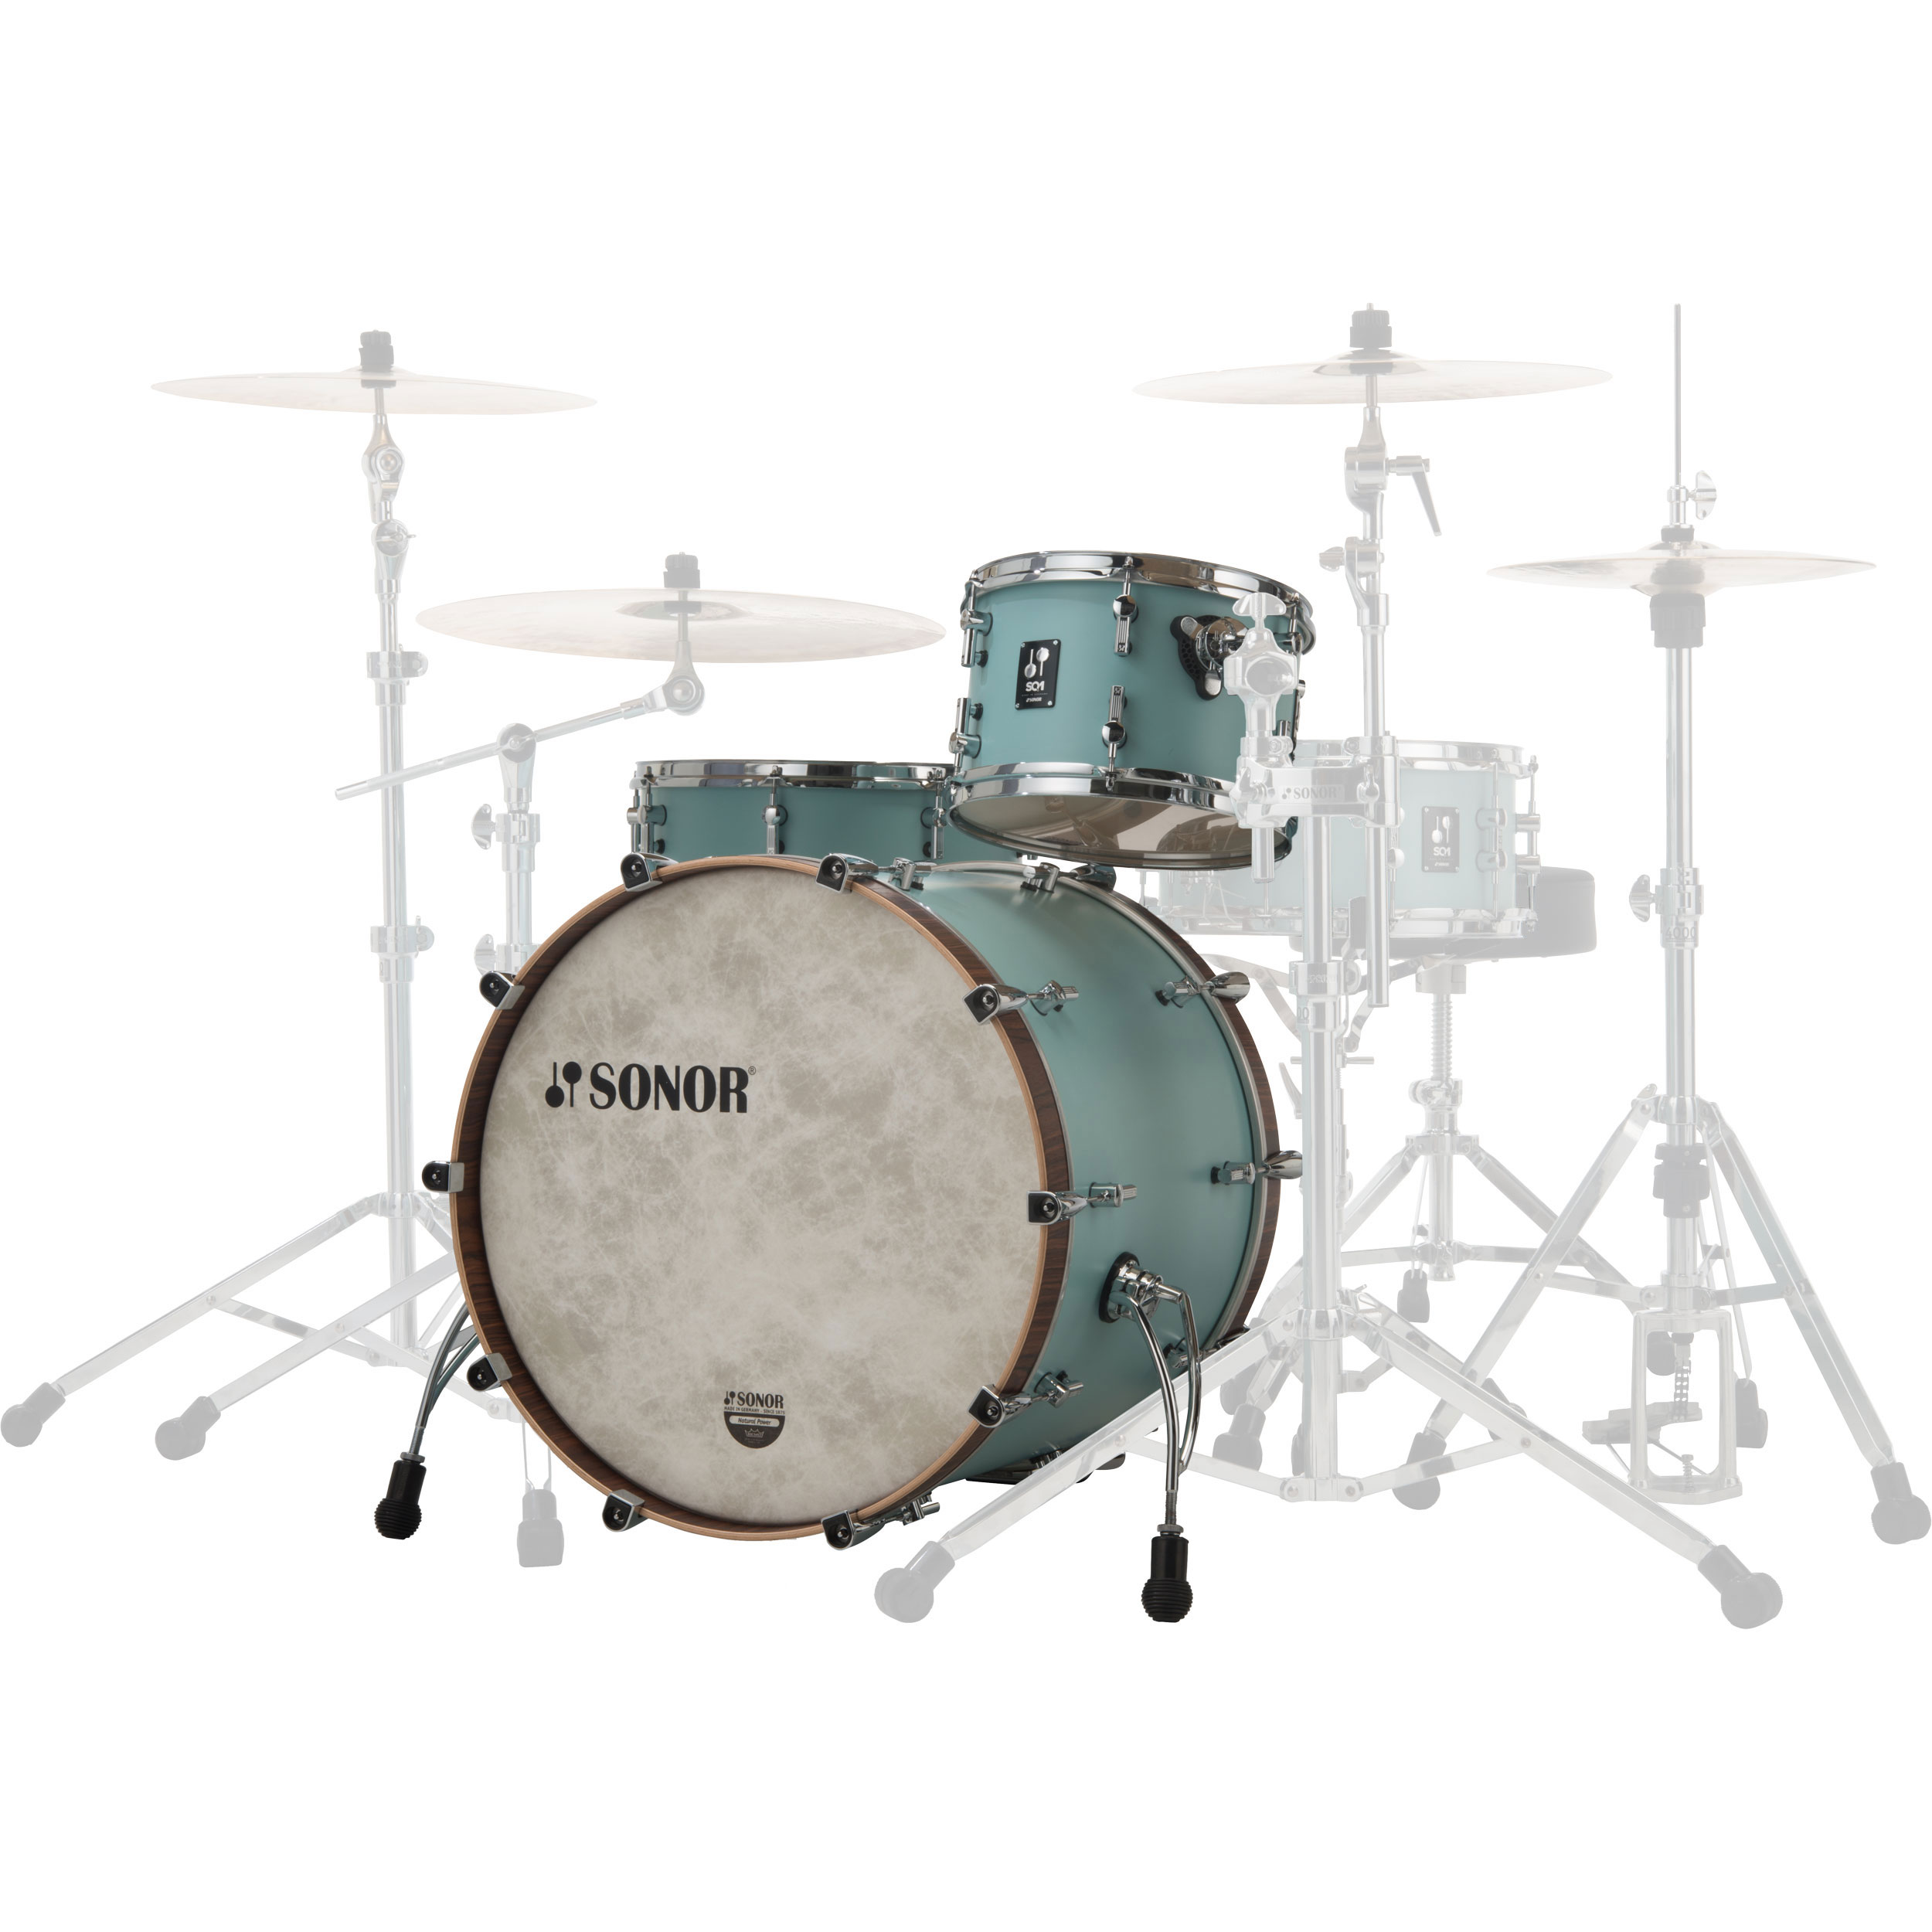 Acoustic Drum Kits Sonor Sq1 22 3 Piece Shell Pack